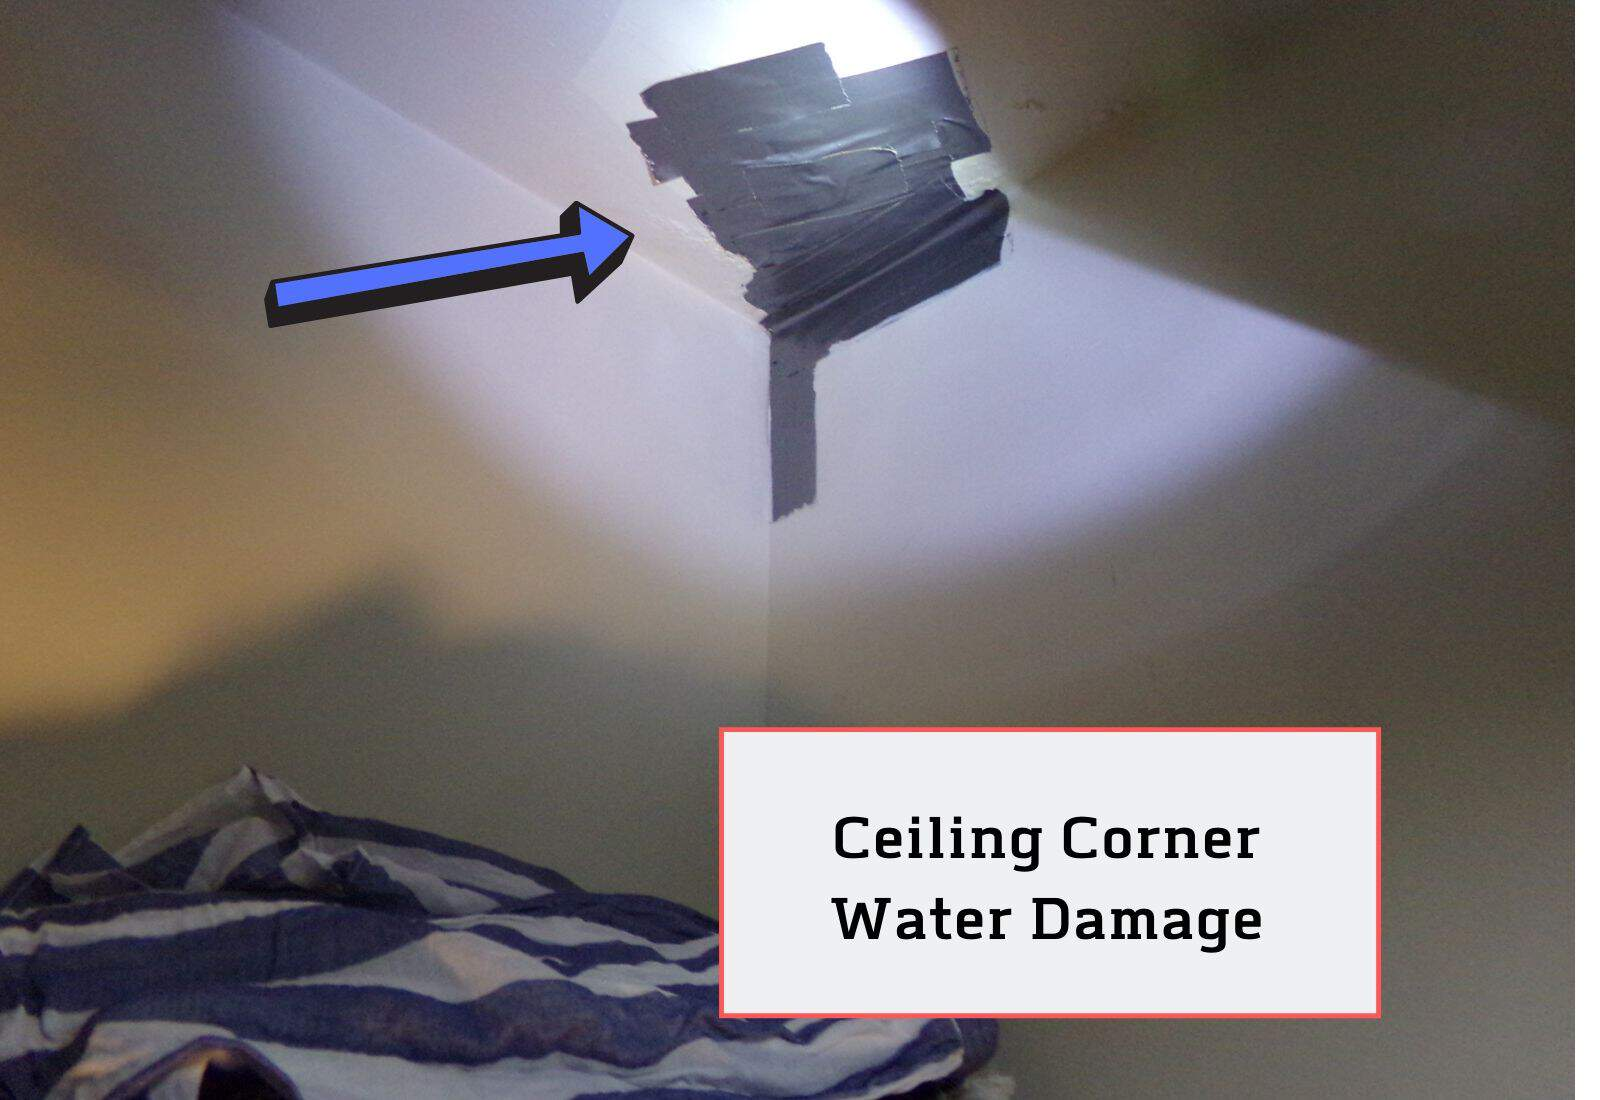 Ceilling Corner Water Damage